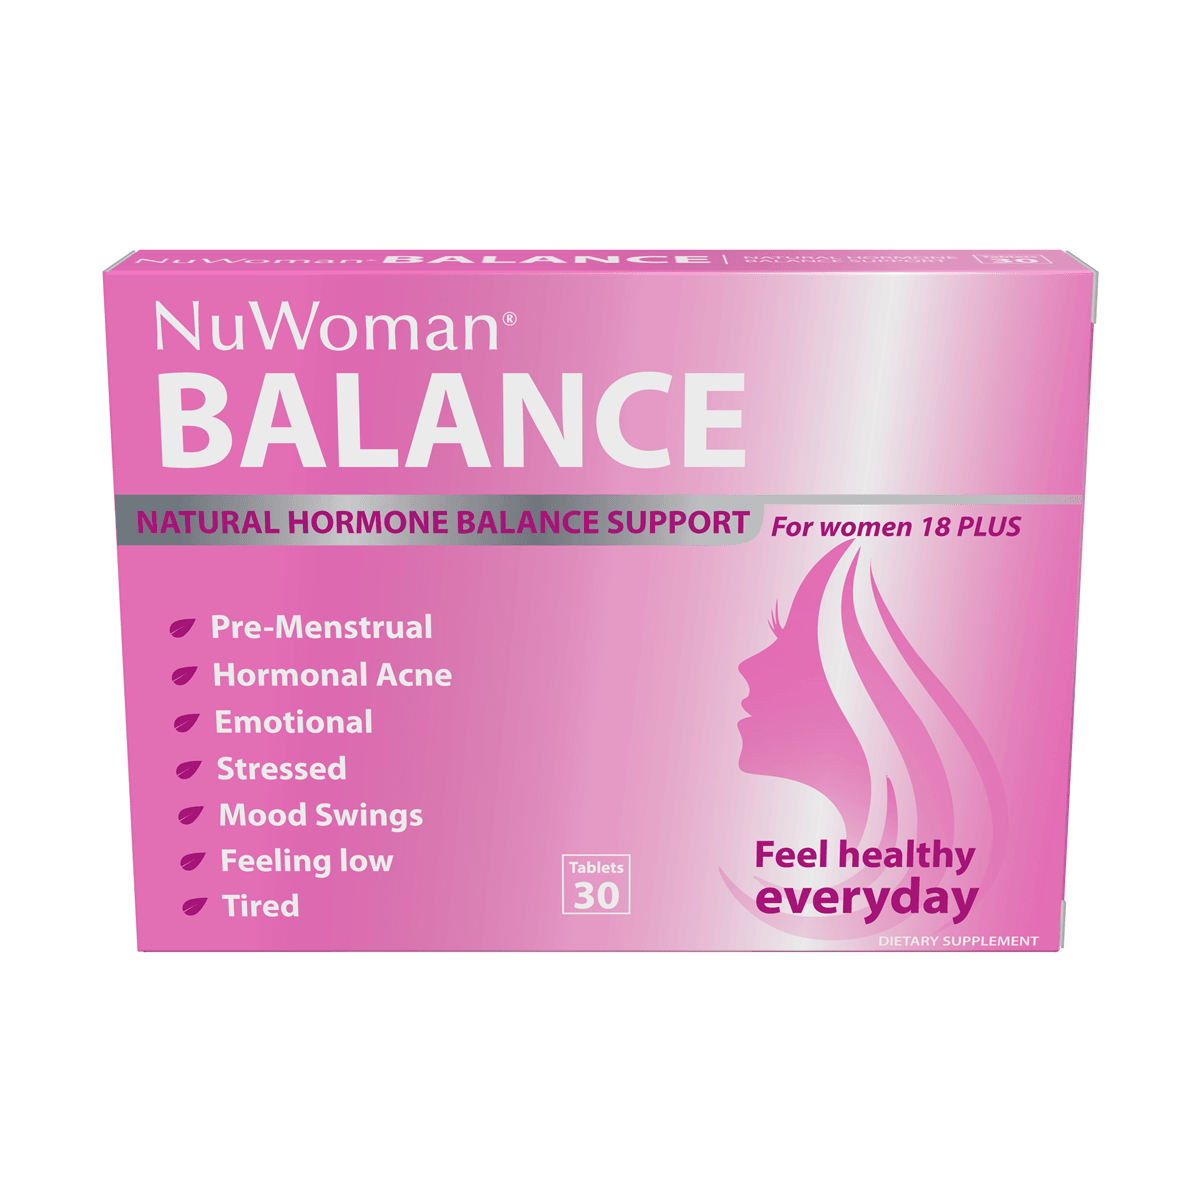 NuWoman® BALANCE Natural Hormone Balance Support for Women 18 PLUS